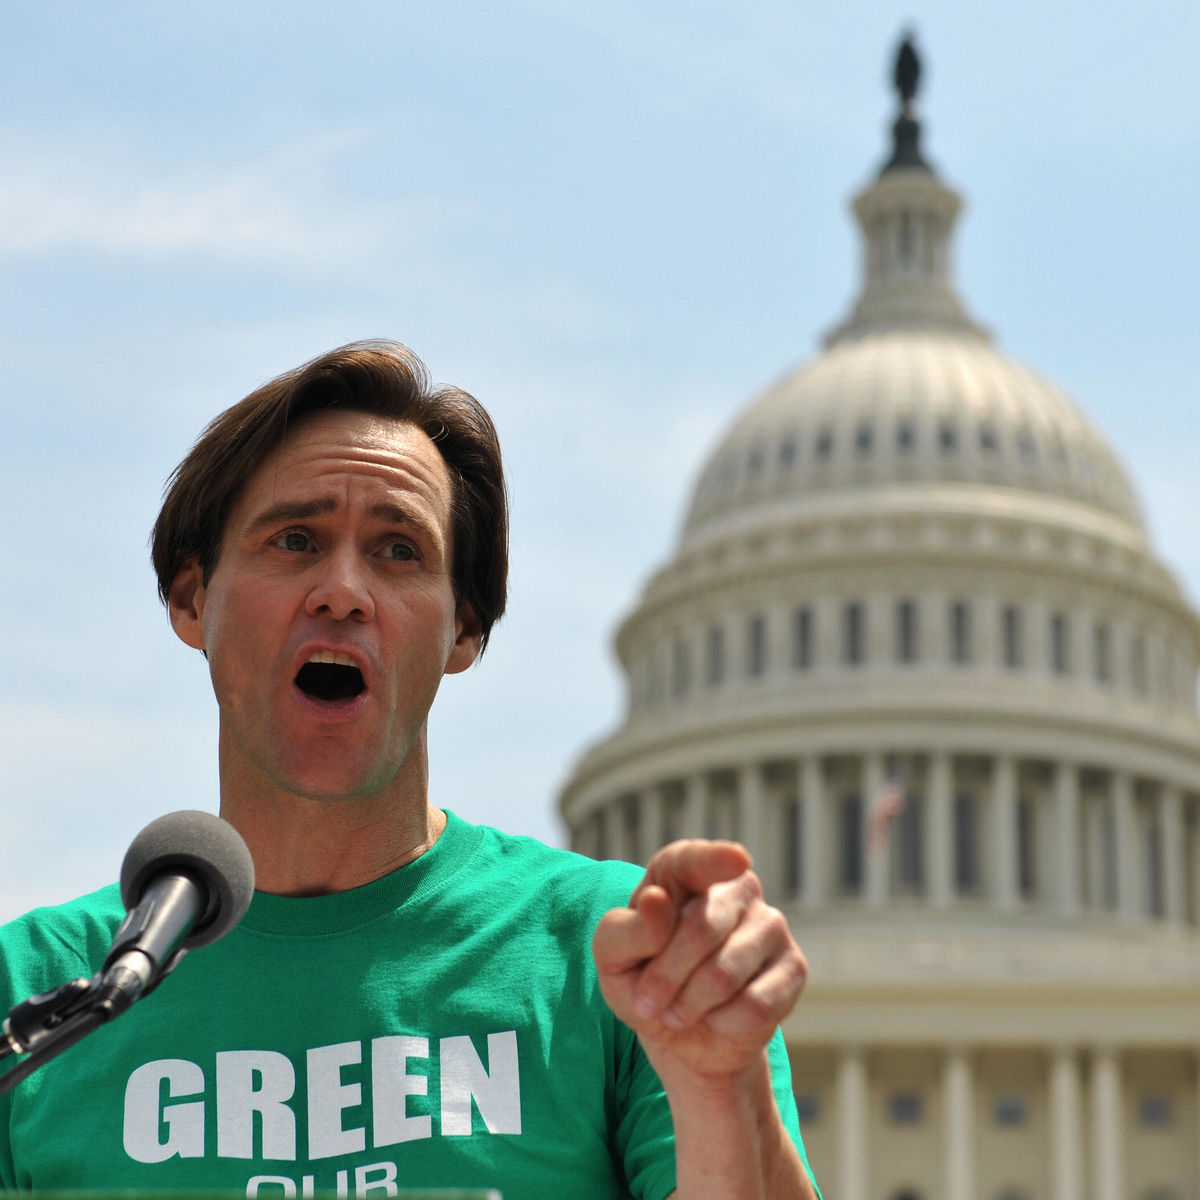 81405695-actor-jim-carrey-speaks-during-a-rally-in-front-of-the.jpg